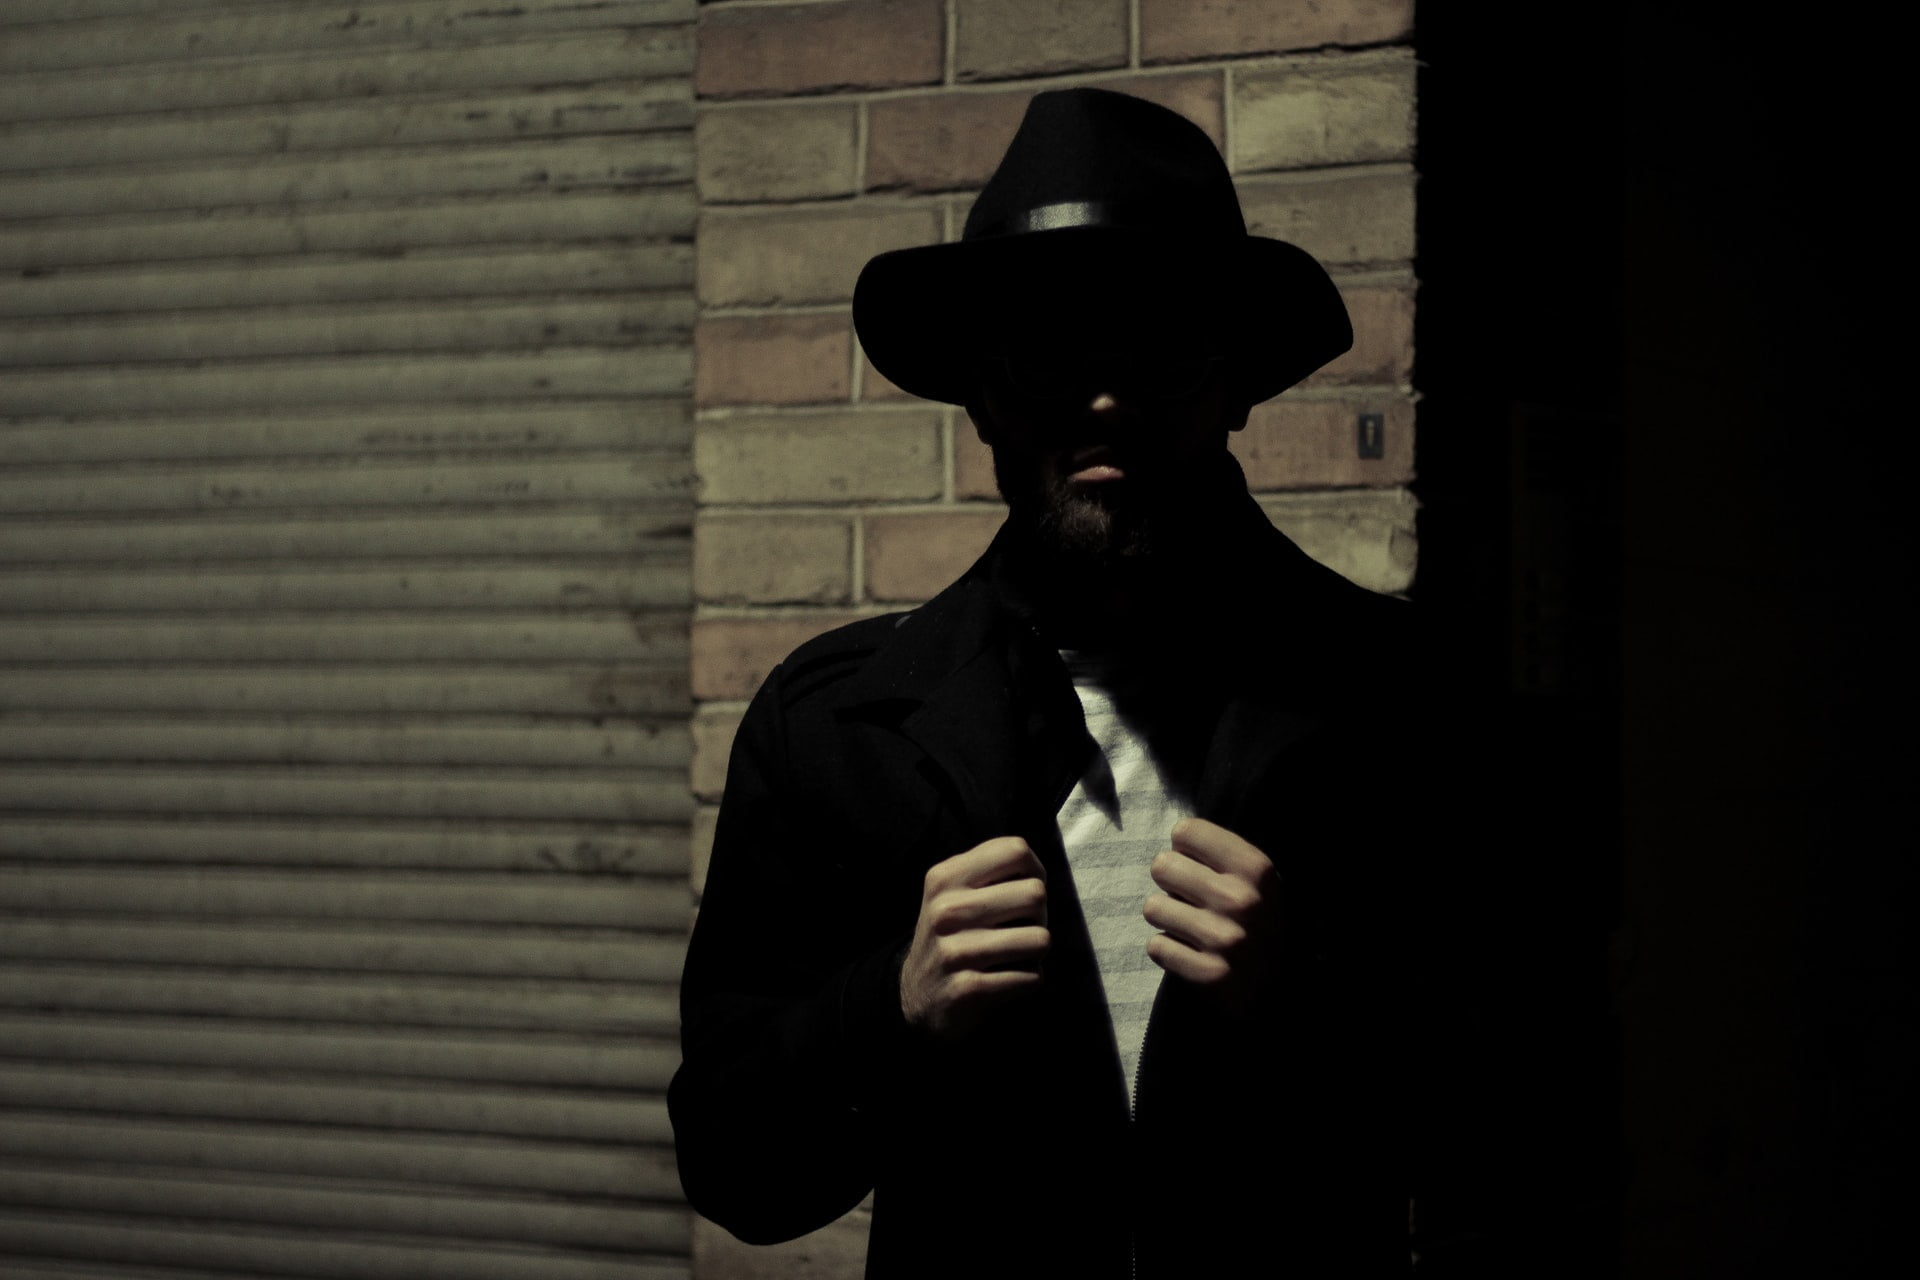 A person in dark wearing spy suit